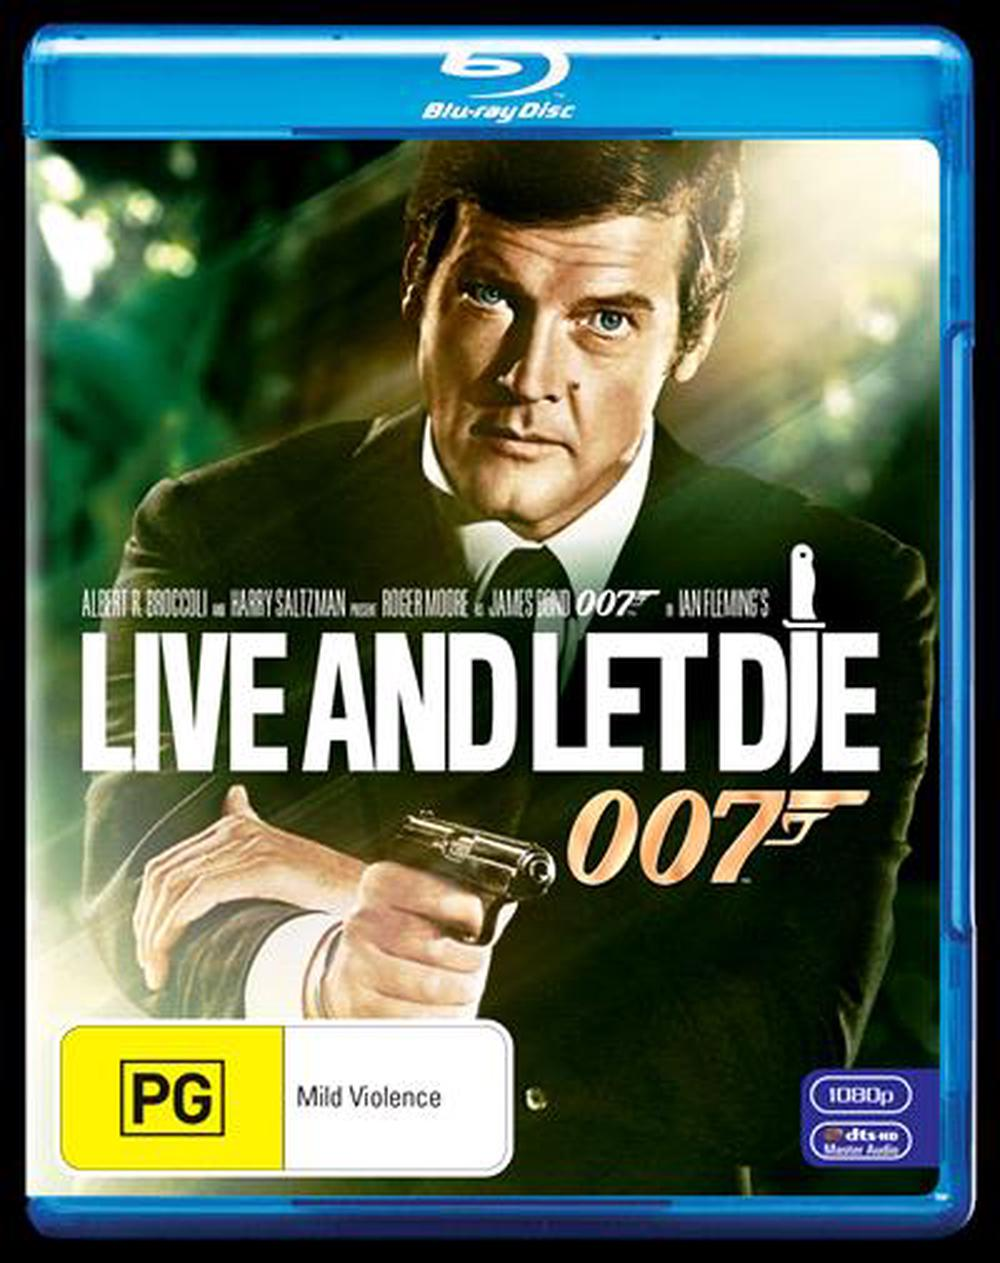 Live And Let Die (2012 Re-release)